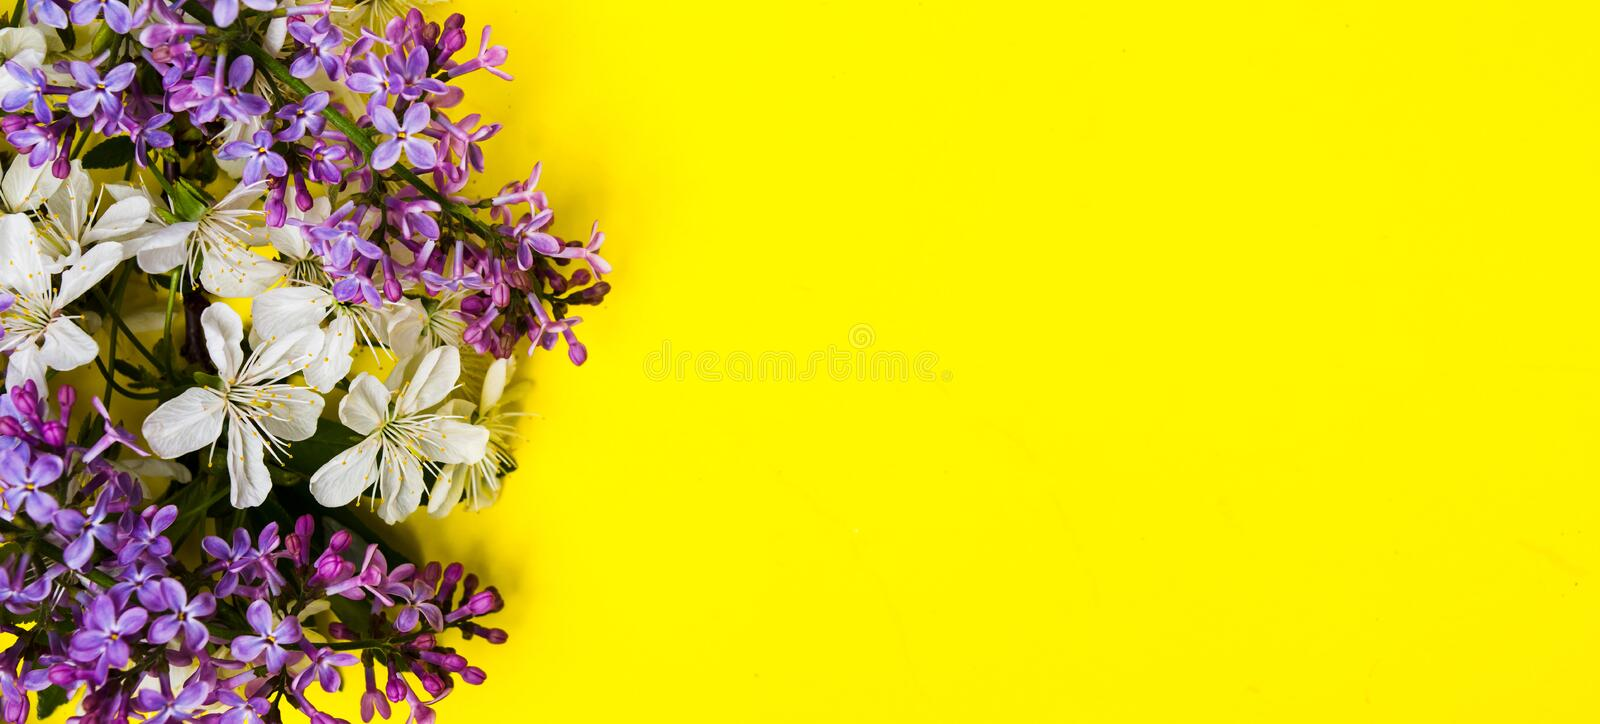 Lilac and spring blossom flowers on yellow background stock photo